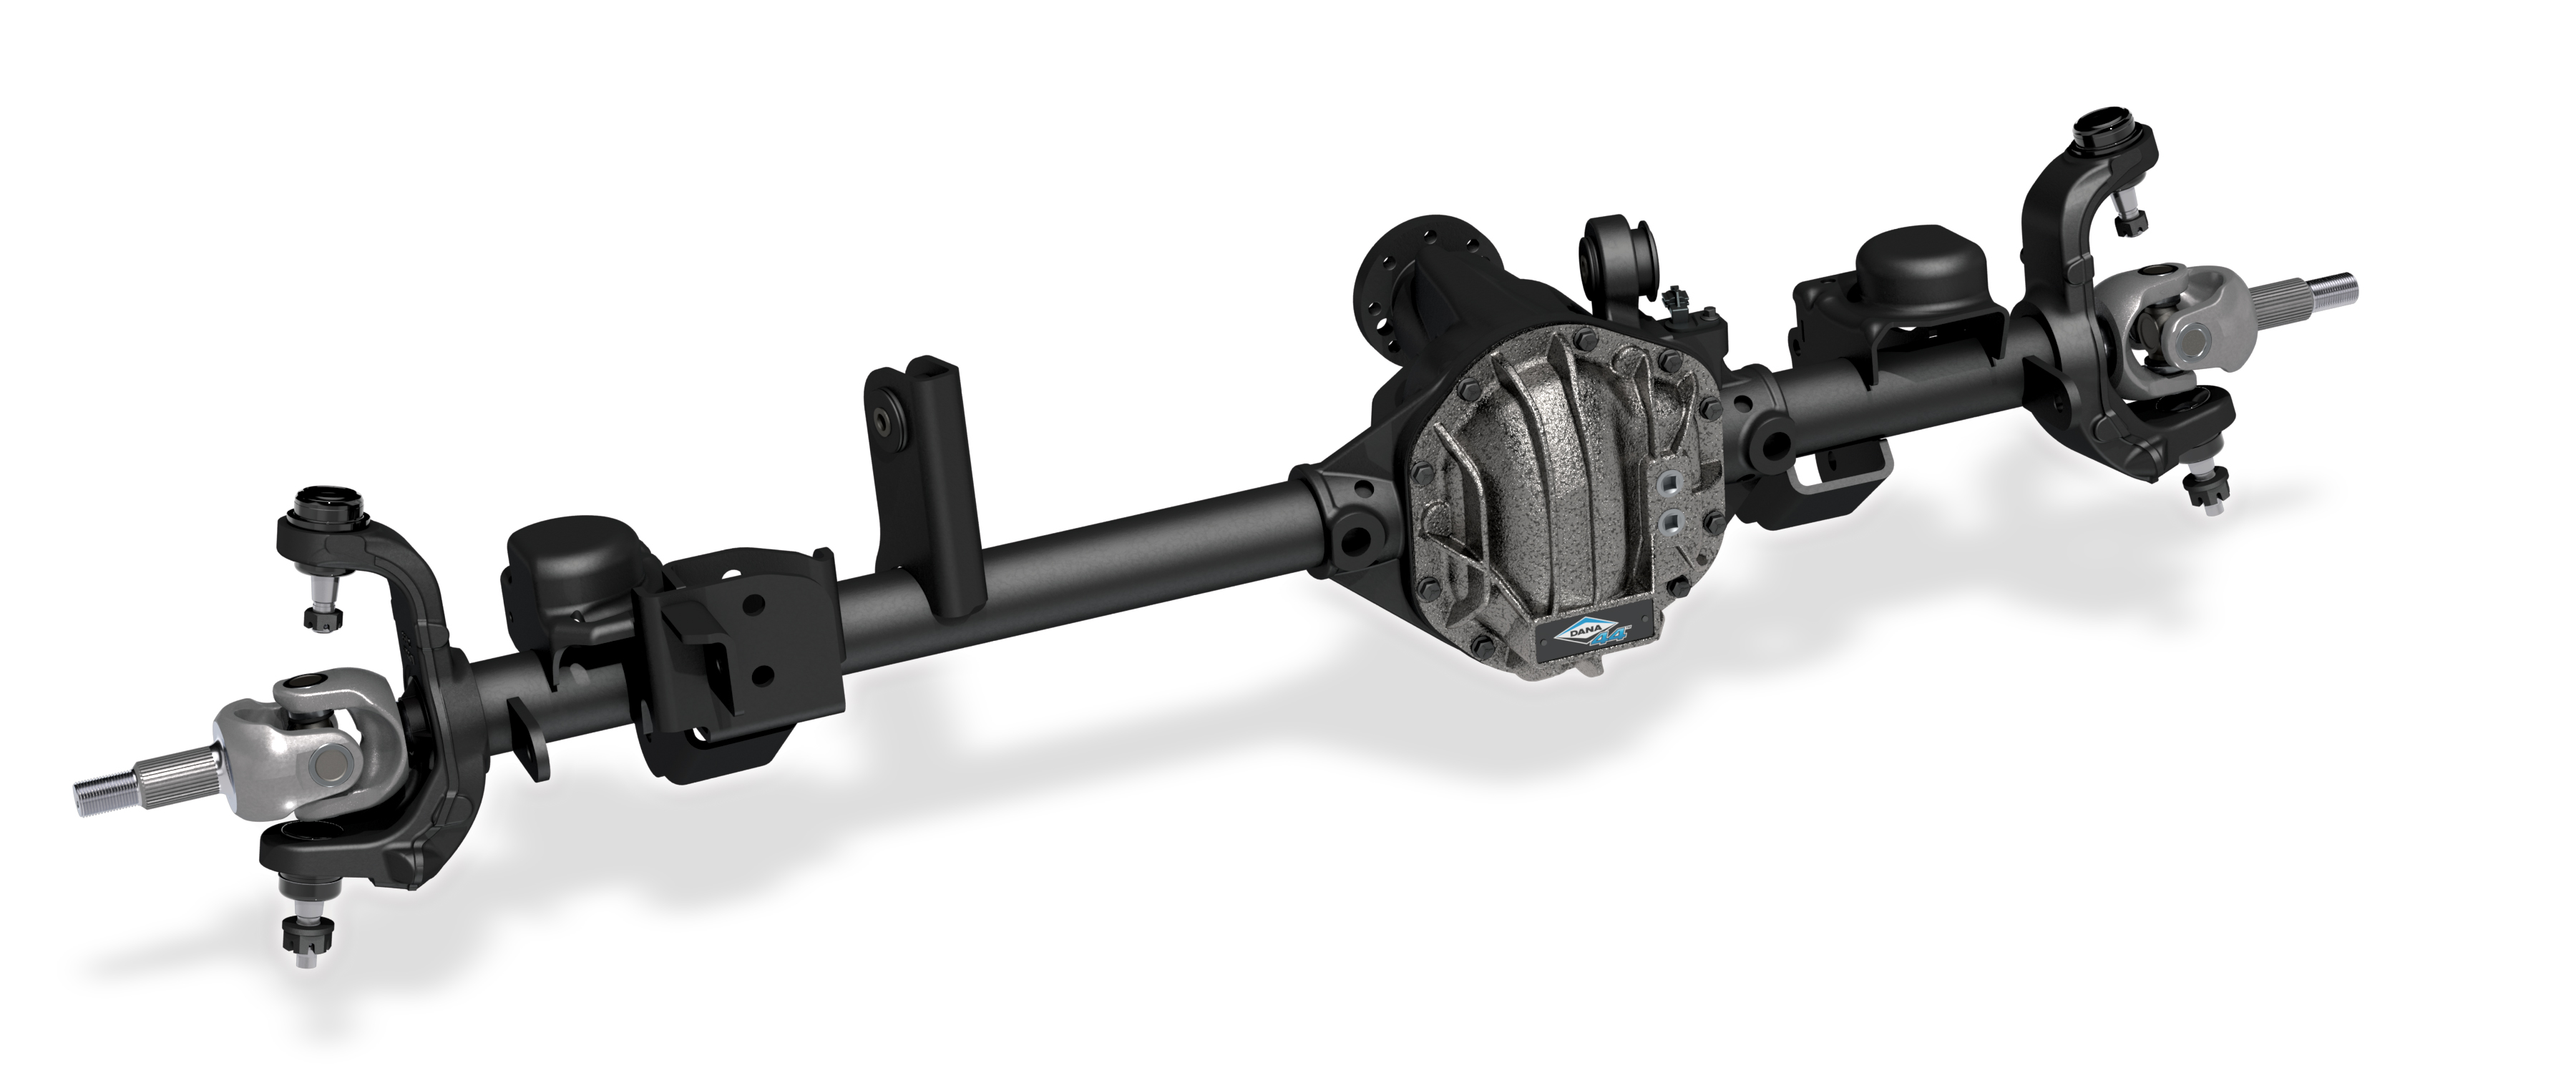 Ultimate Dana 44™ Front Axles for the Jeep® Wrangler® JK